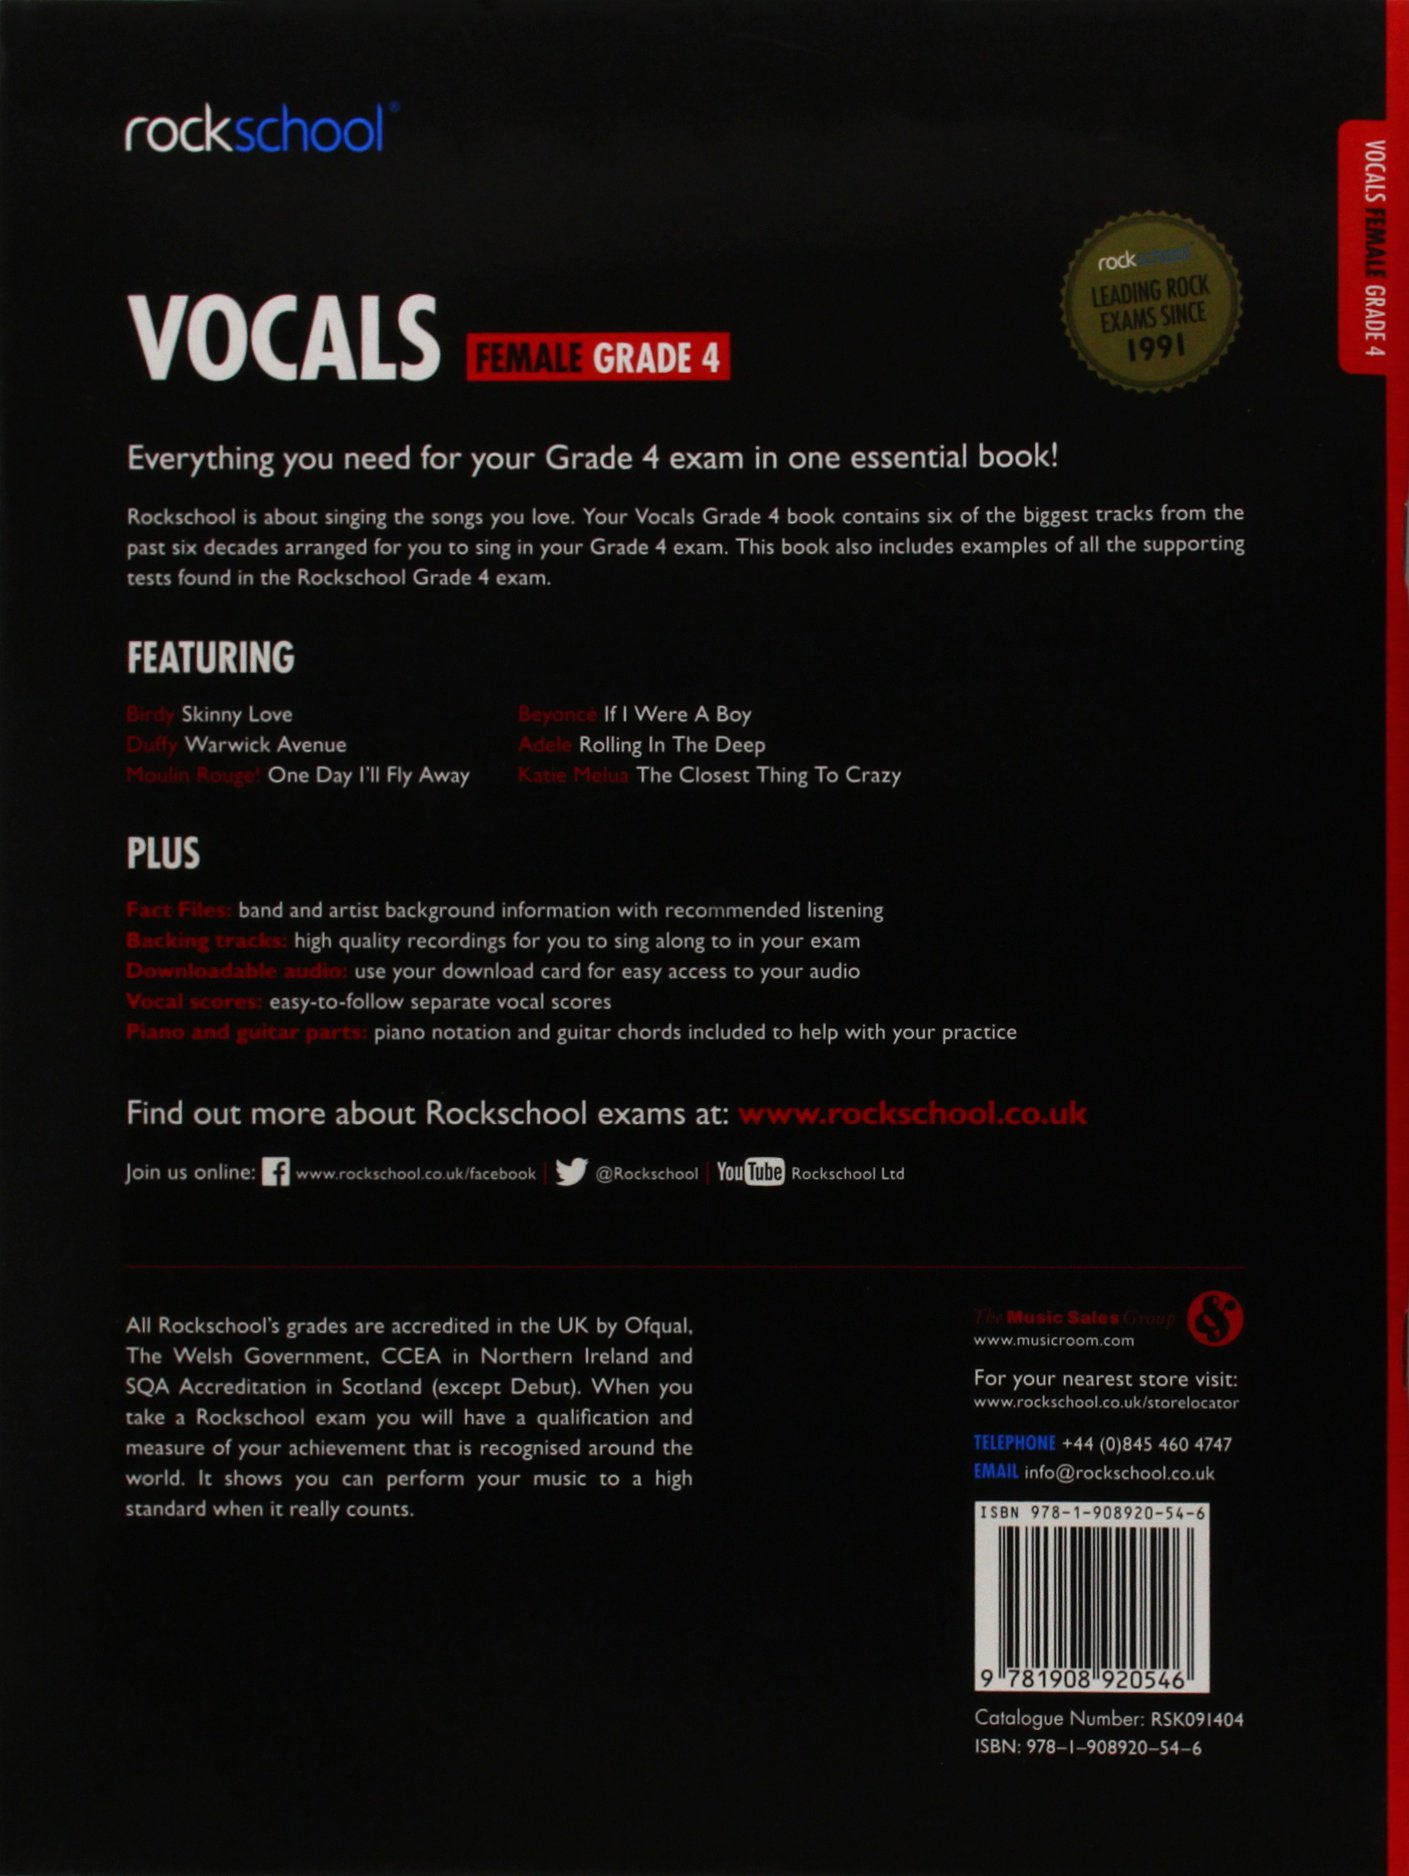 Rockschool Vocals Grade 4 Female 2014 2017 Amazon Various